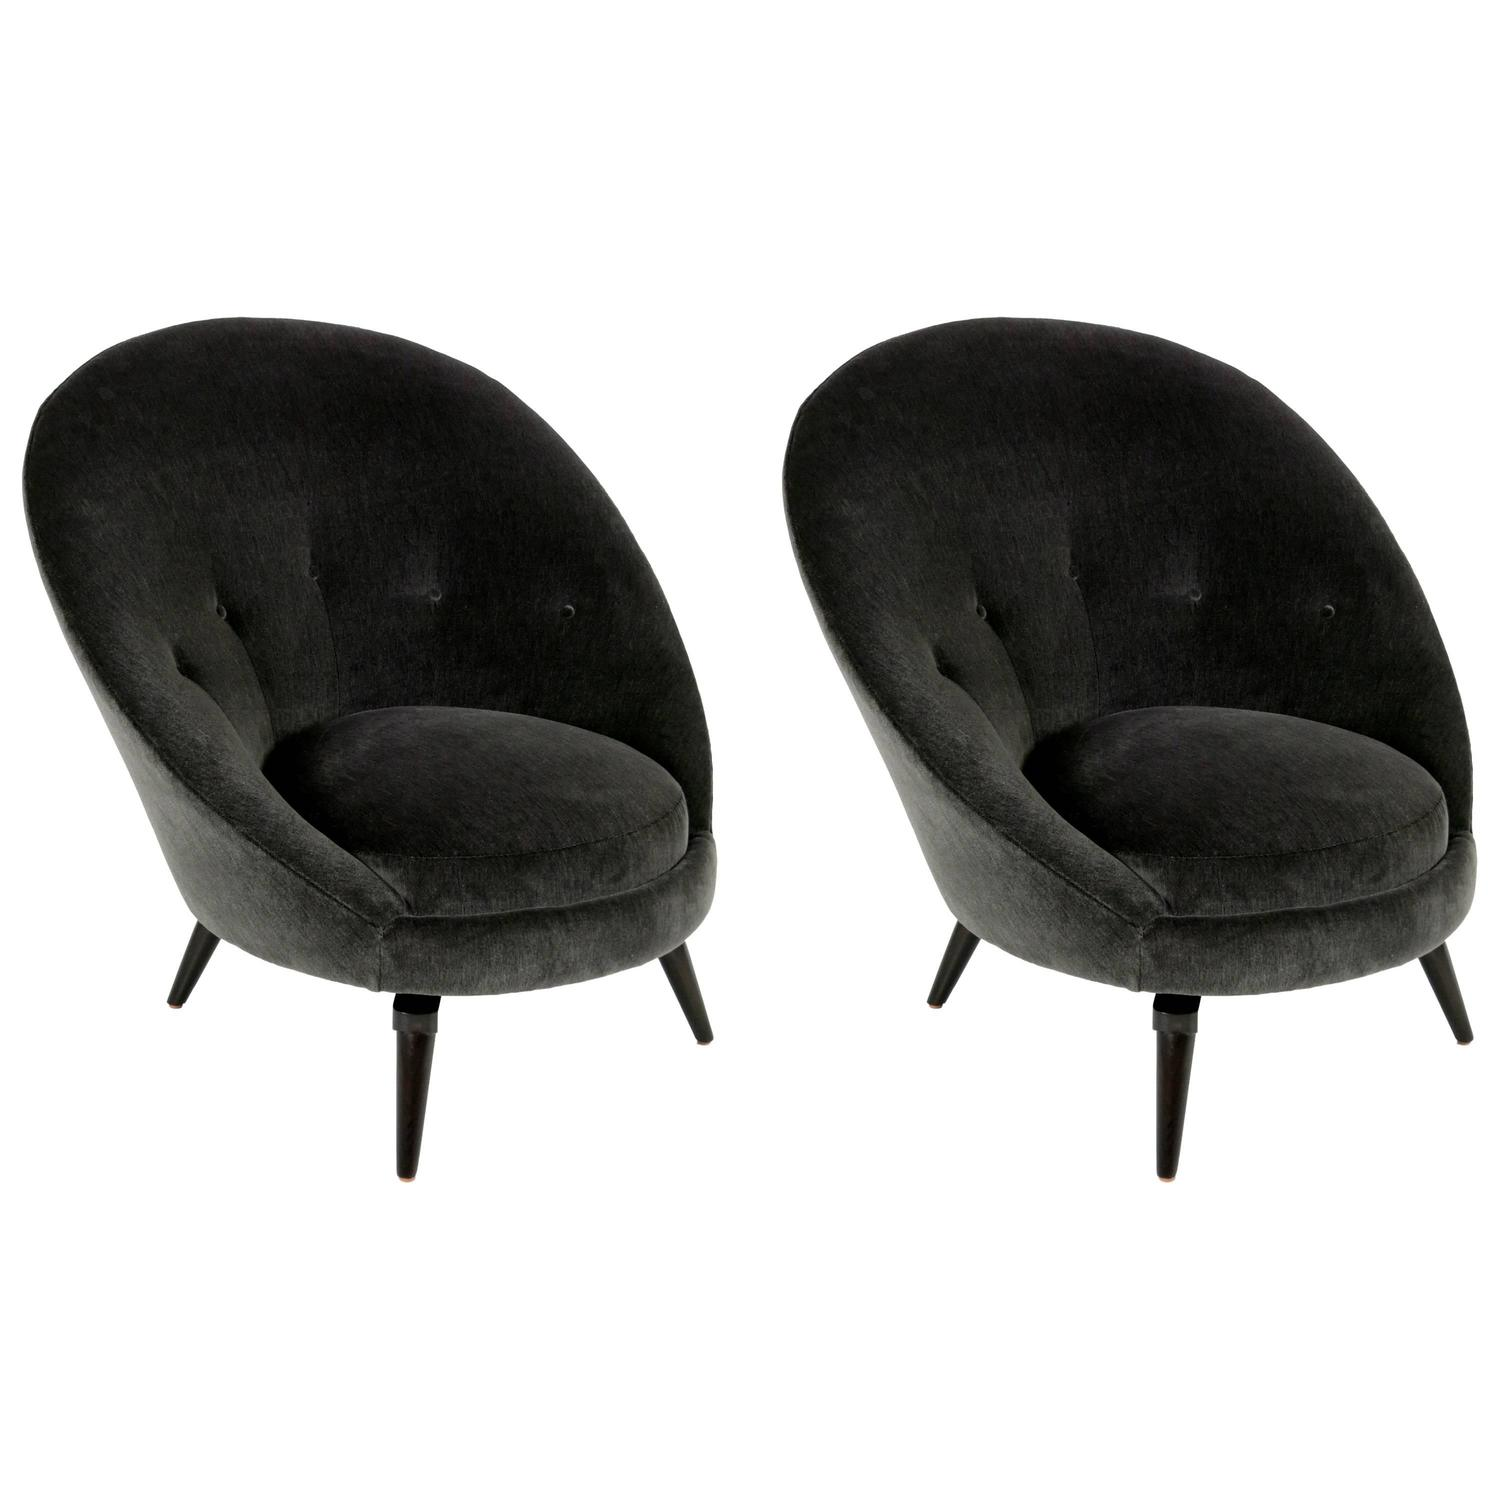 Pair of swivel egg chairs in the style of royere at 1stdibs - Second hand egg chair ...